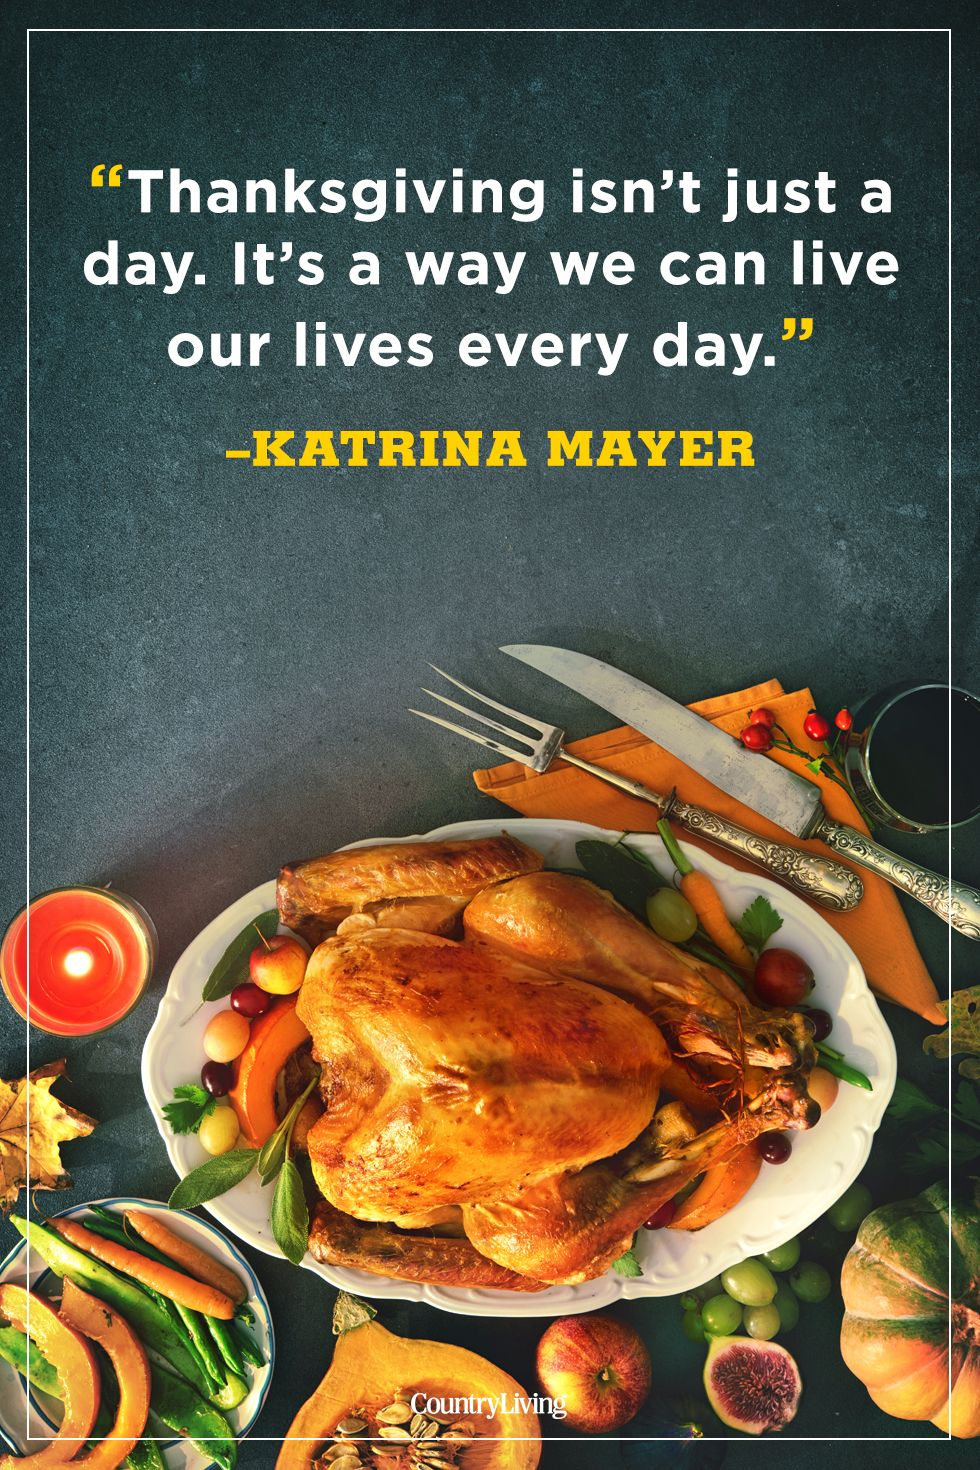 Quotes day Thanksgiving best photo